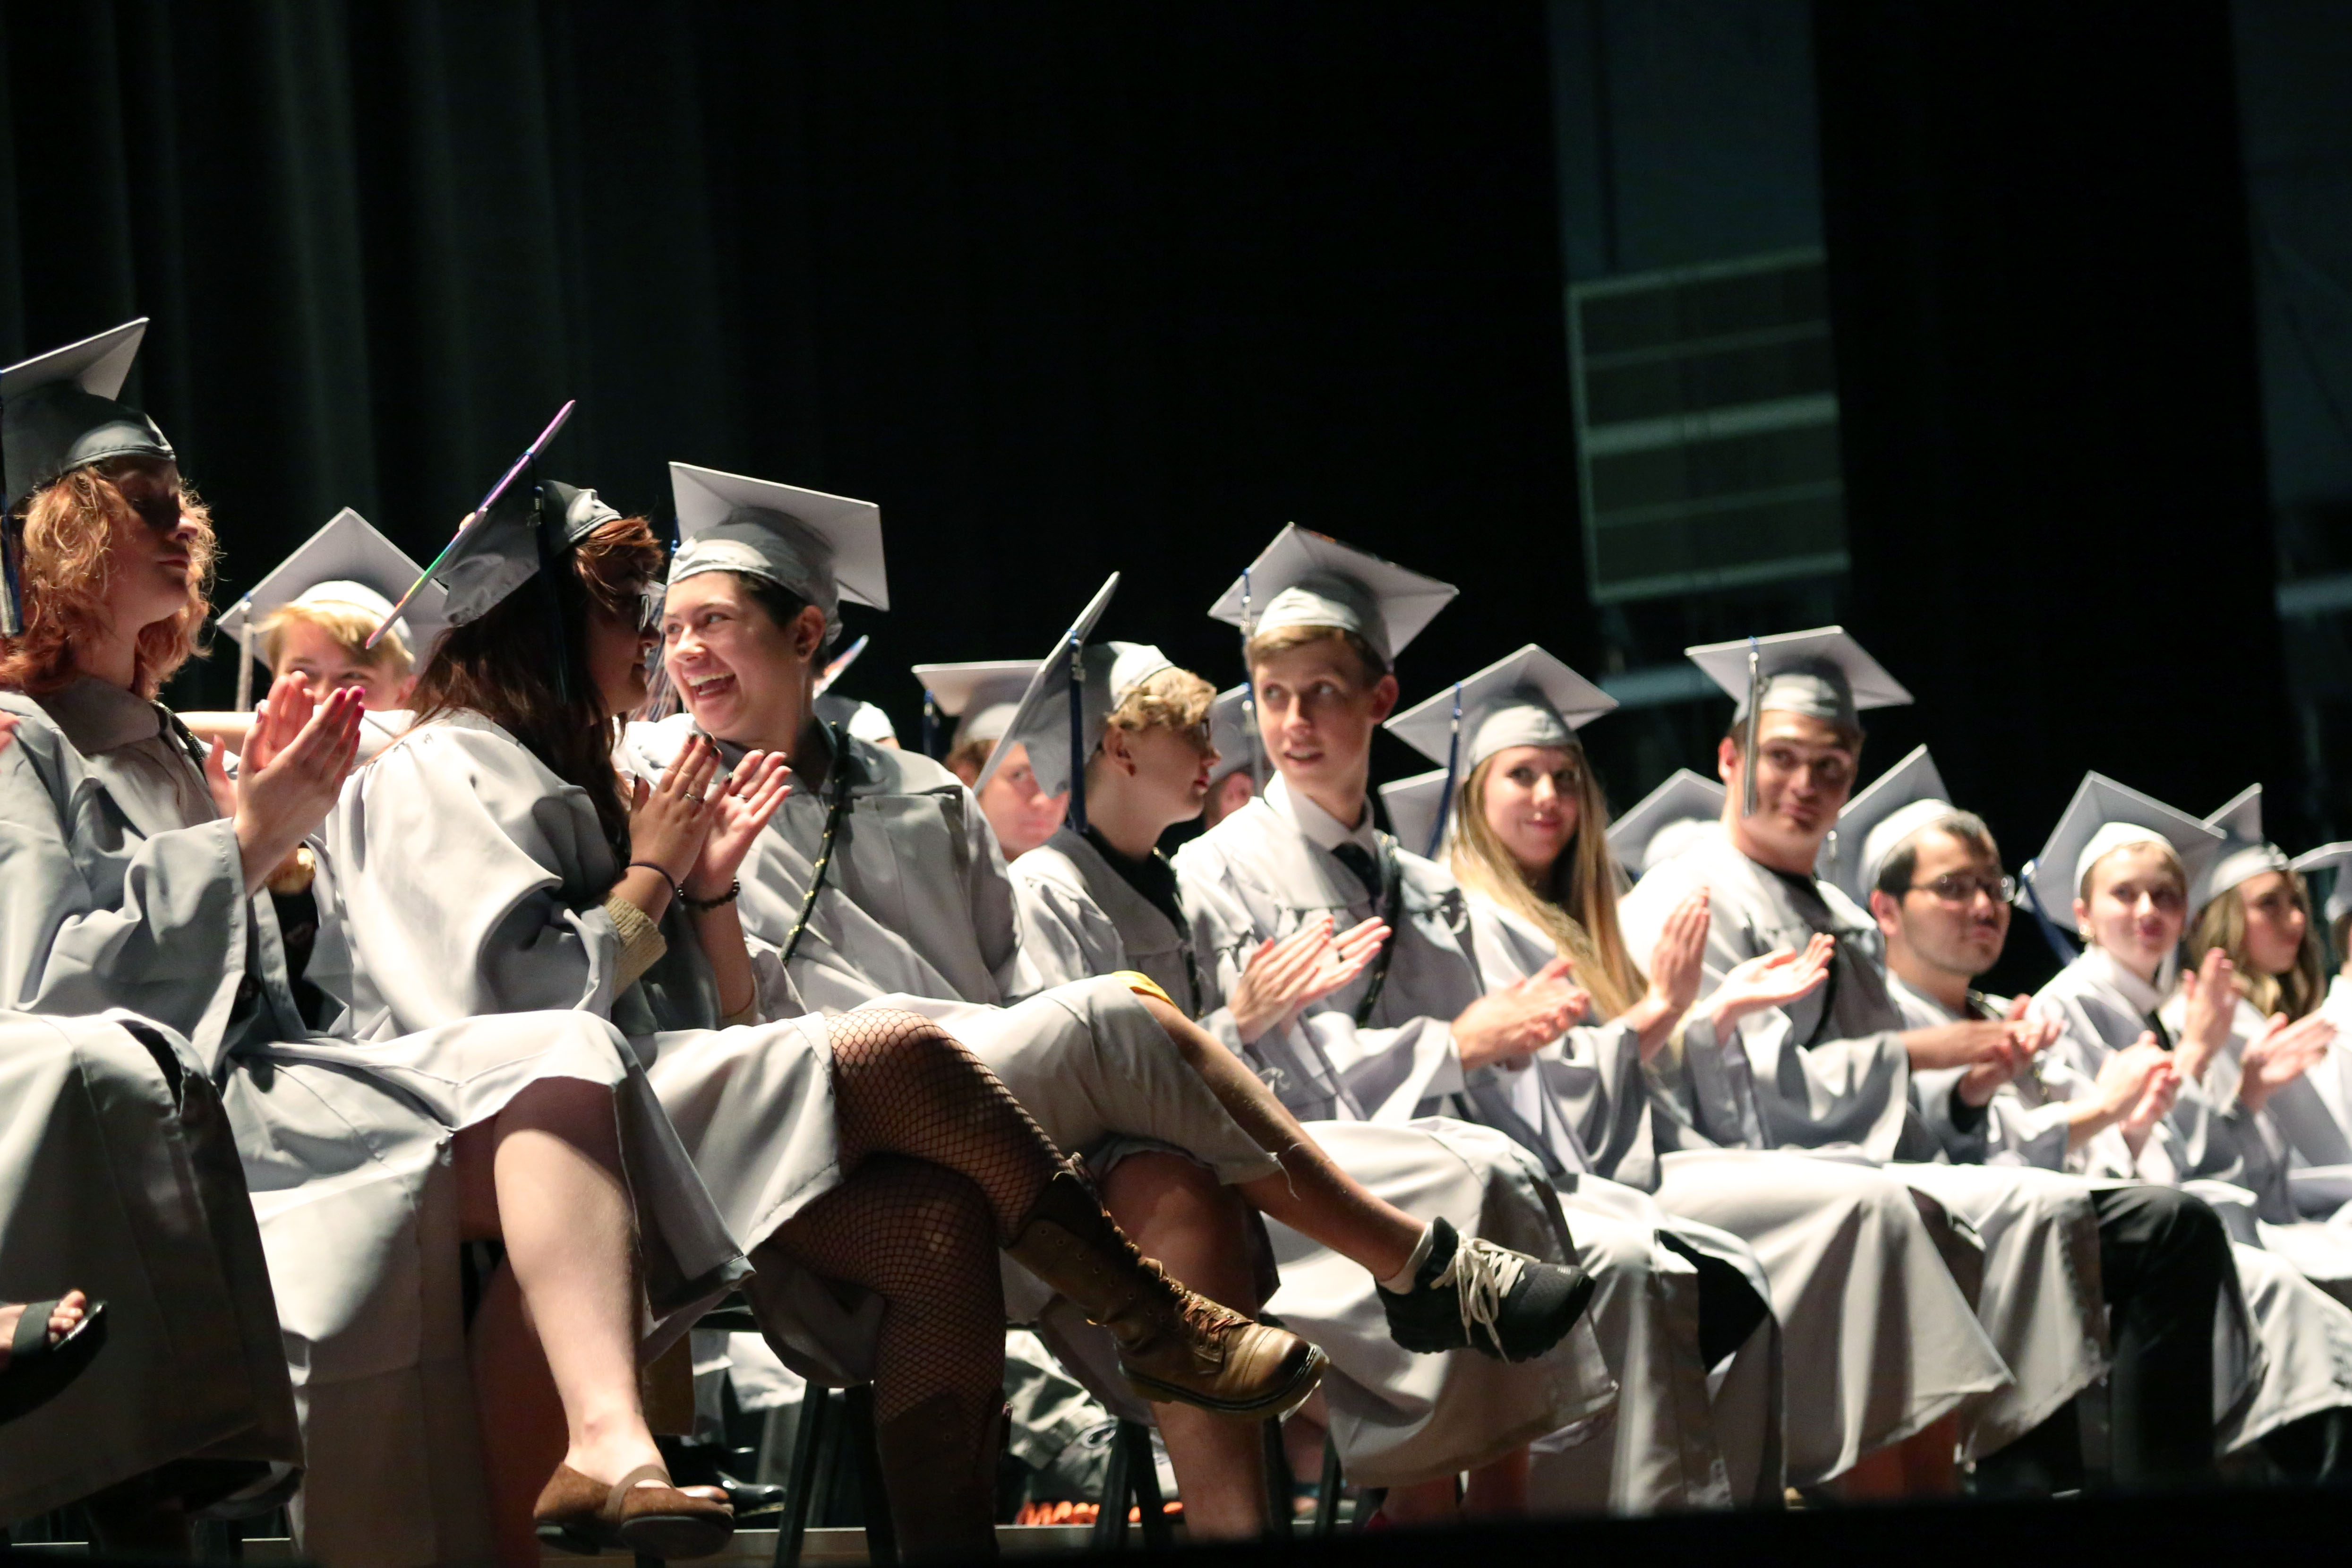 Polaris graduates clap and smile during the ceremony.